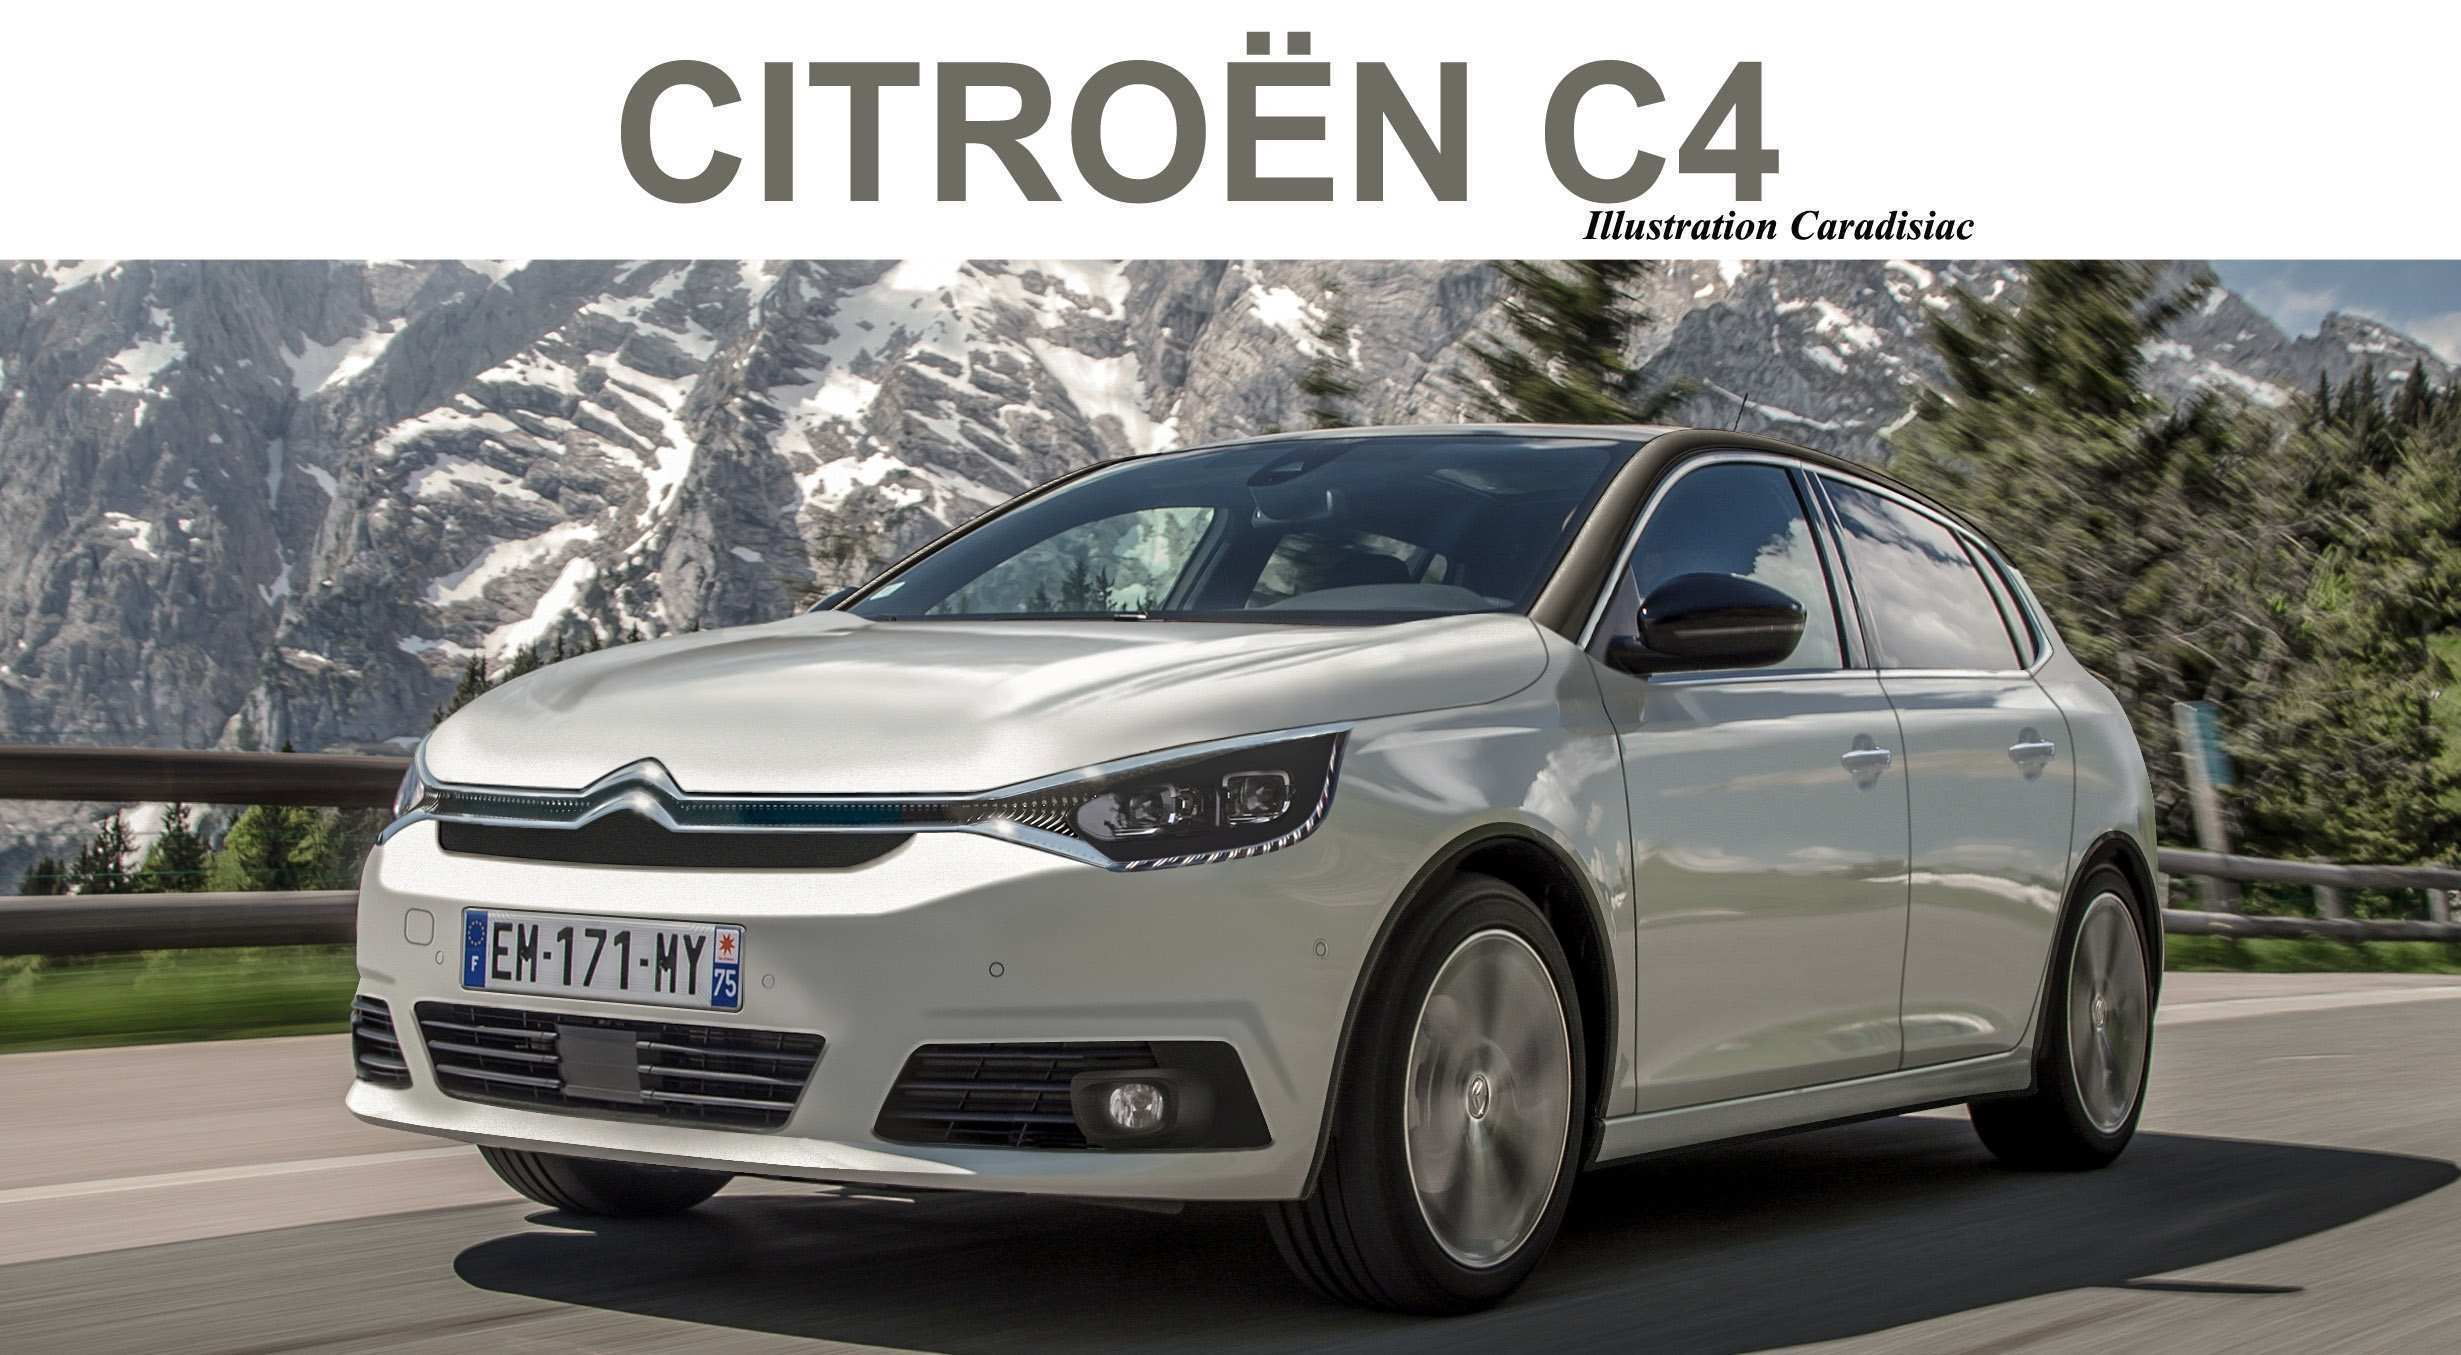 15 Concept of Citroen C4 2020 Specs by Citroen C4 2020